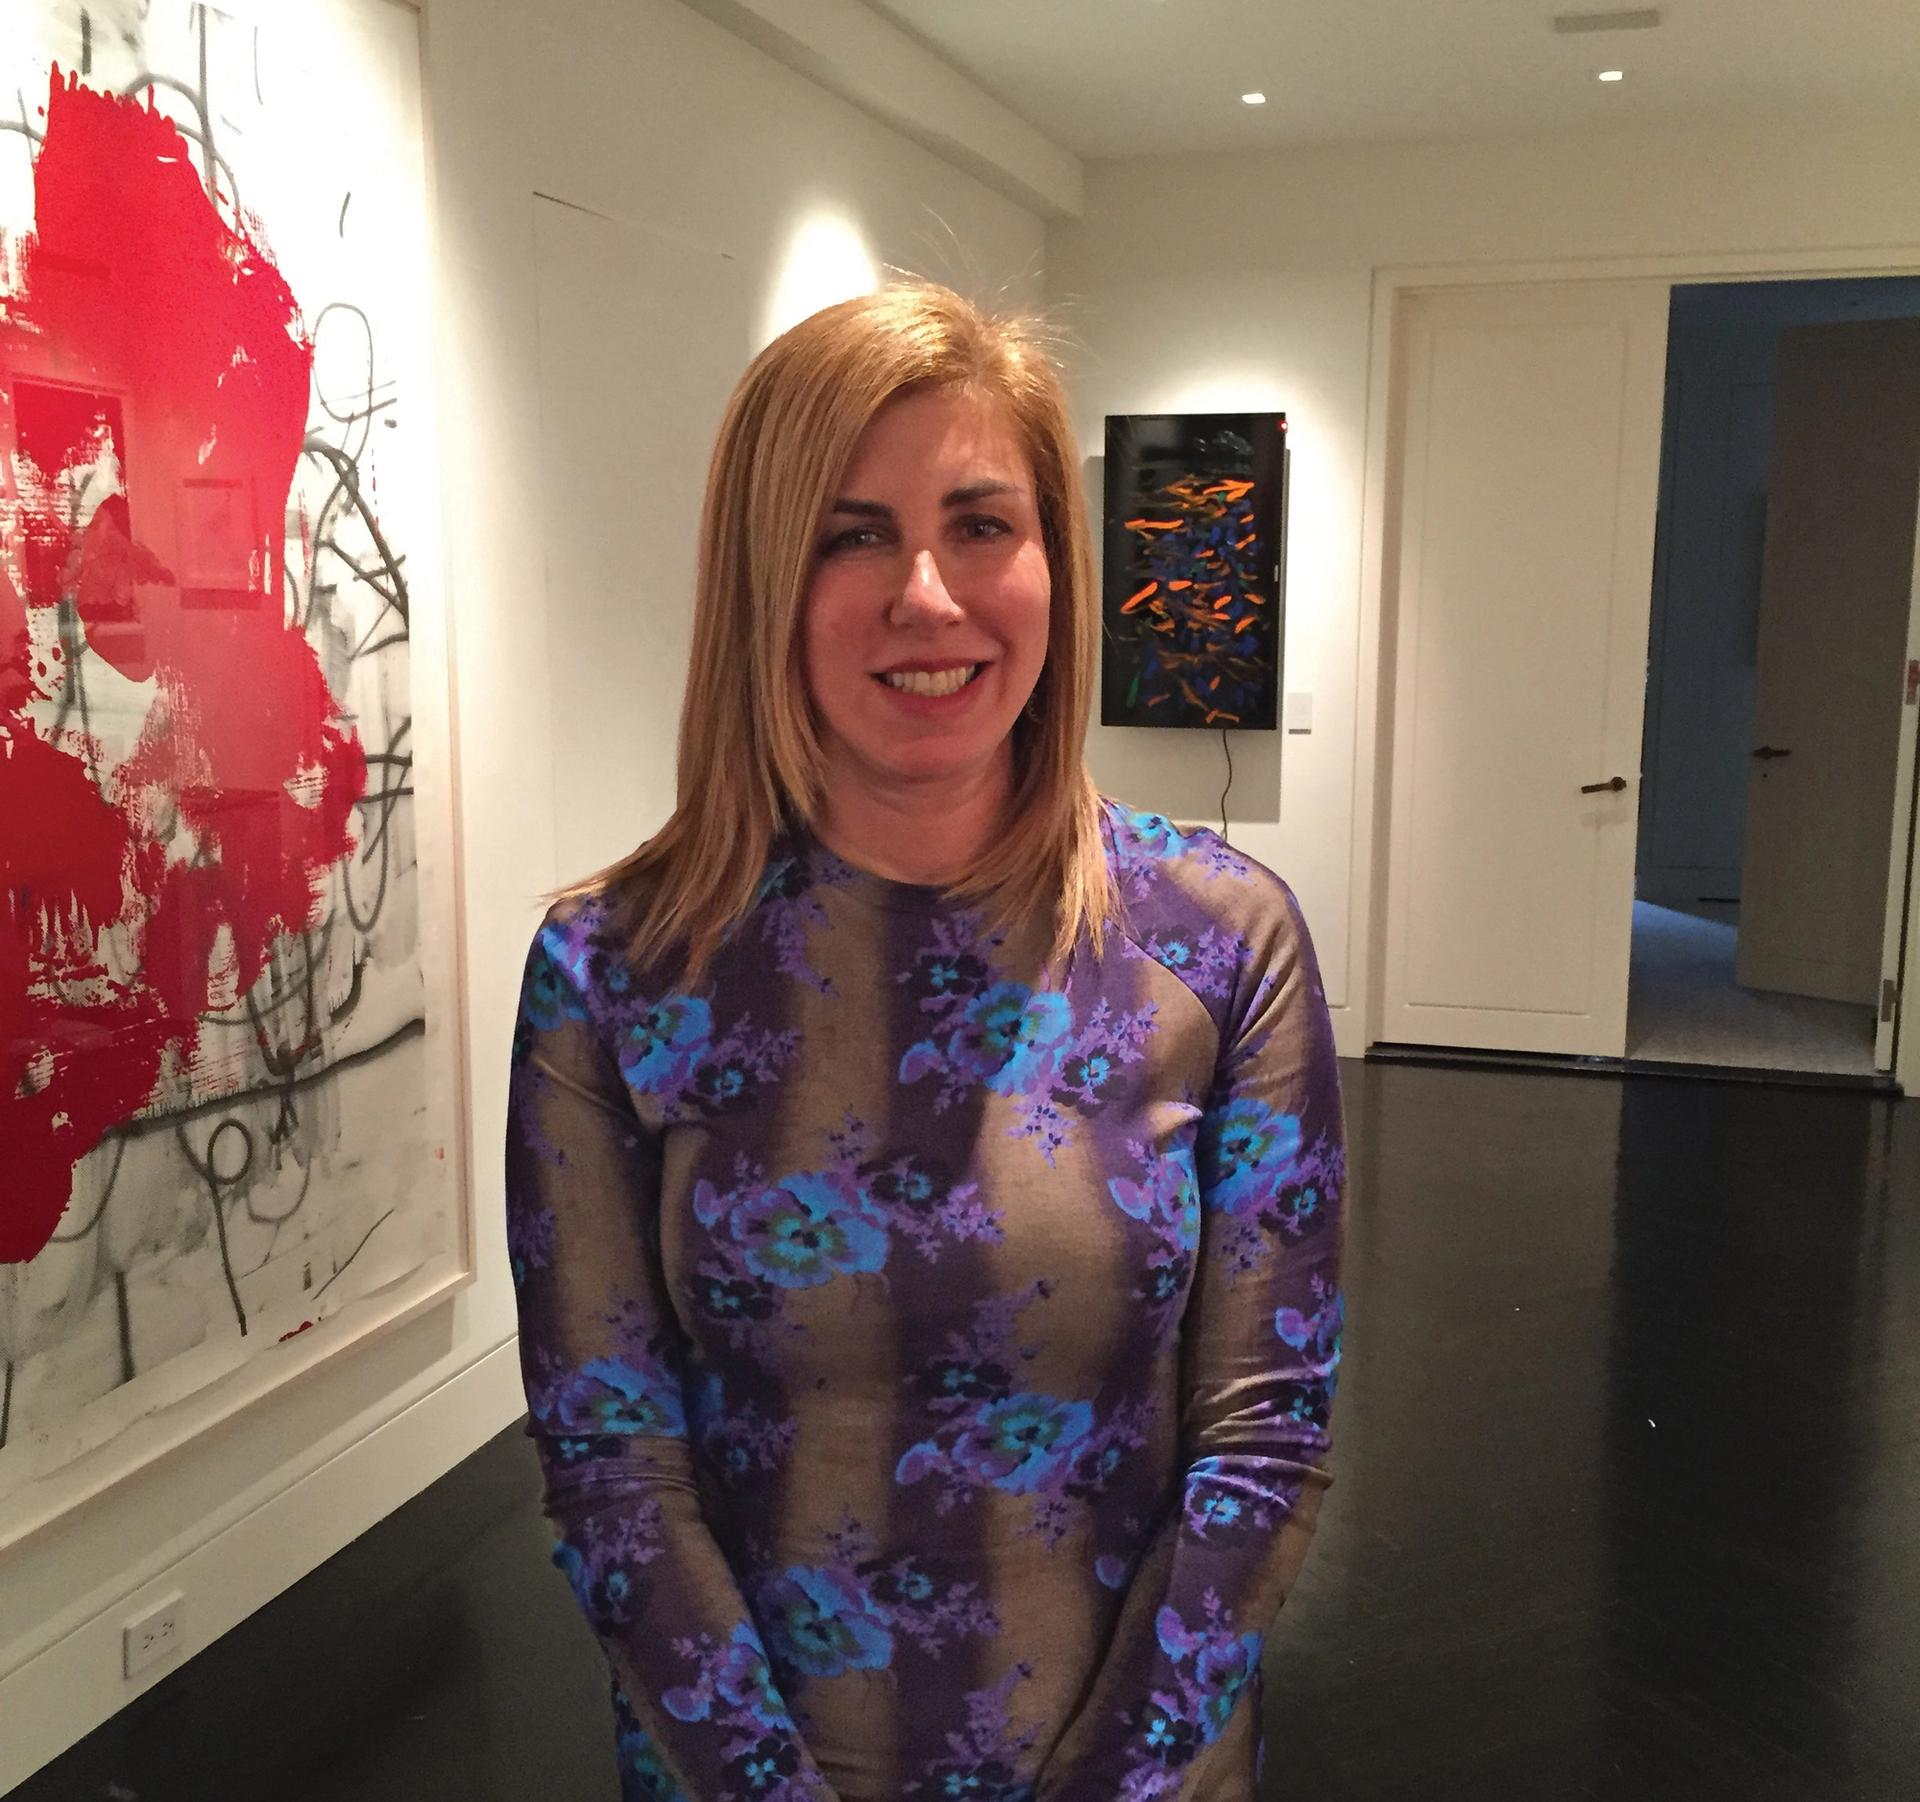 """Collector Candace Carmel Barasch thinks of art as """"the great philosopher"""" Courtesy of Candace Carmel Barasch"""